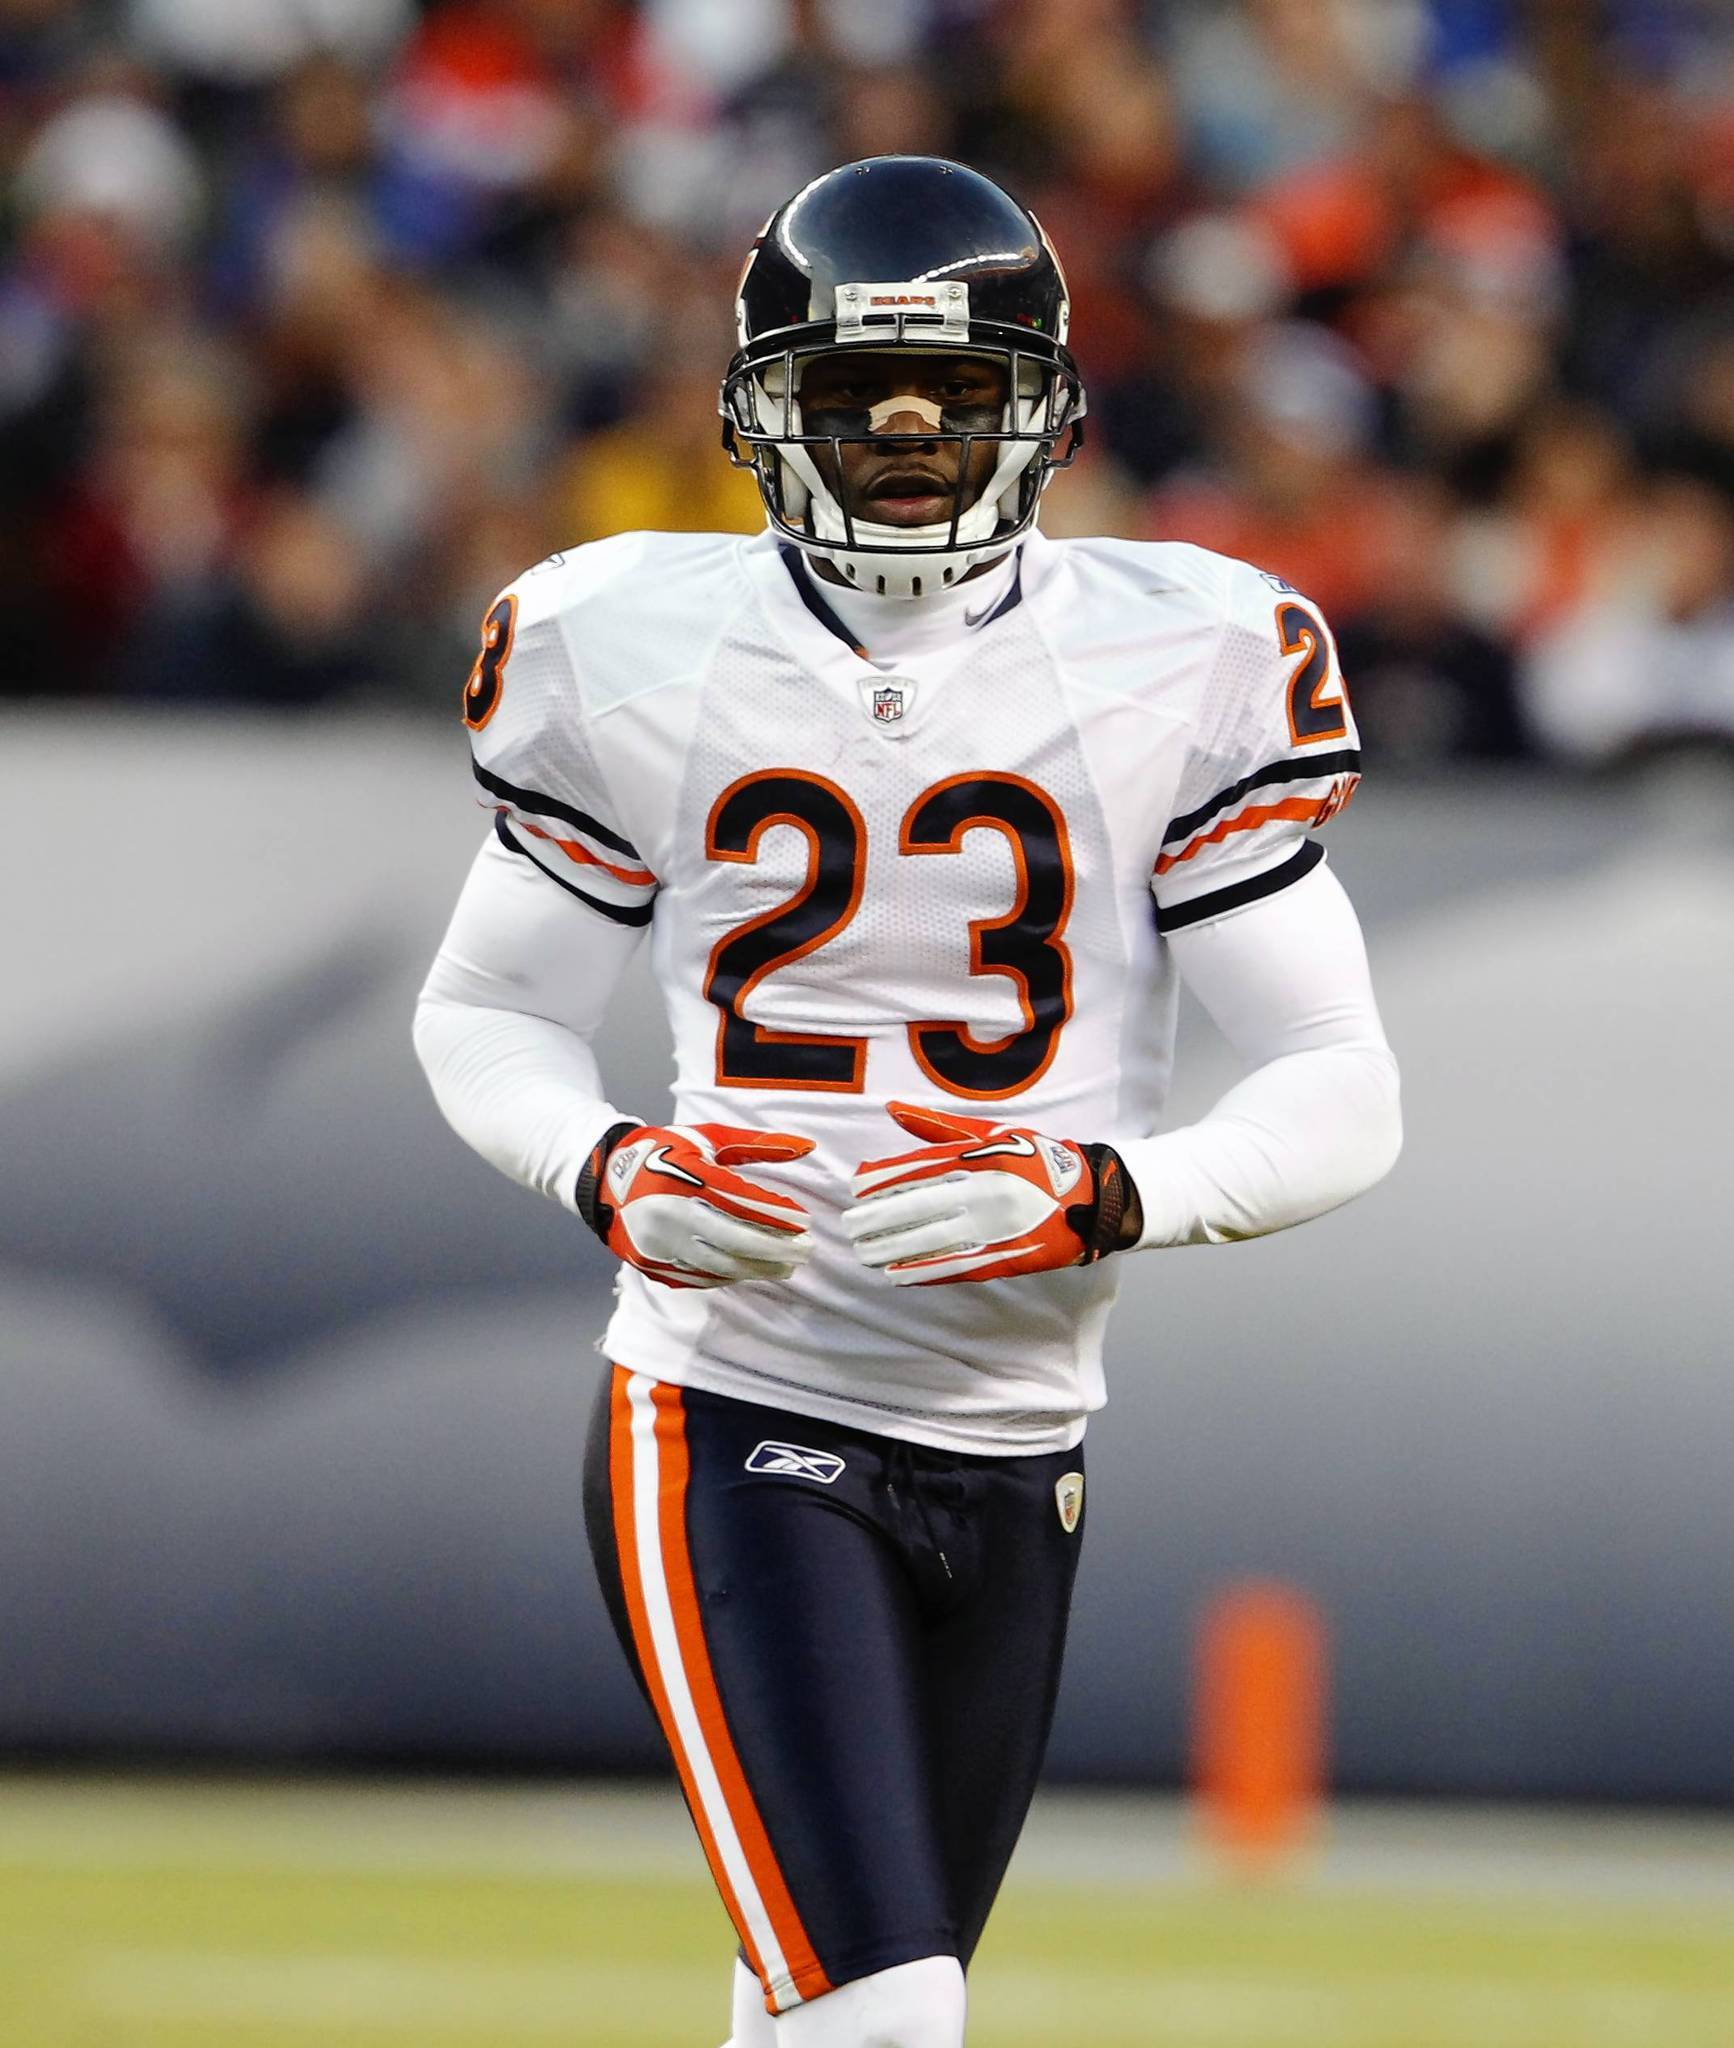 Chicago Bears wide receiver Devin Hester has listed his 3,100-square-foot Gurnee home for $329,900.